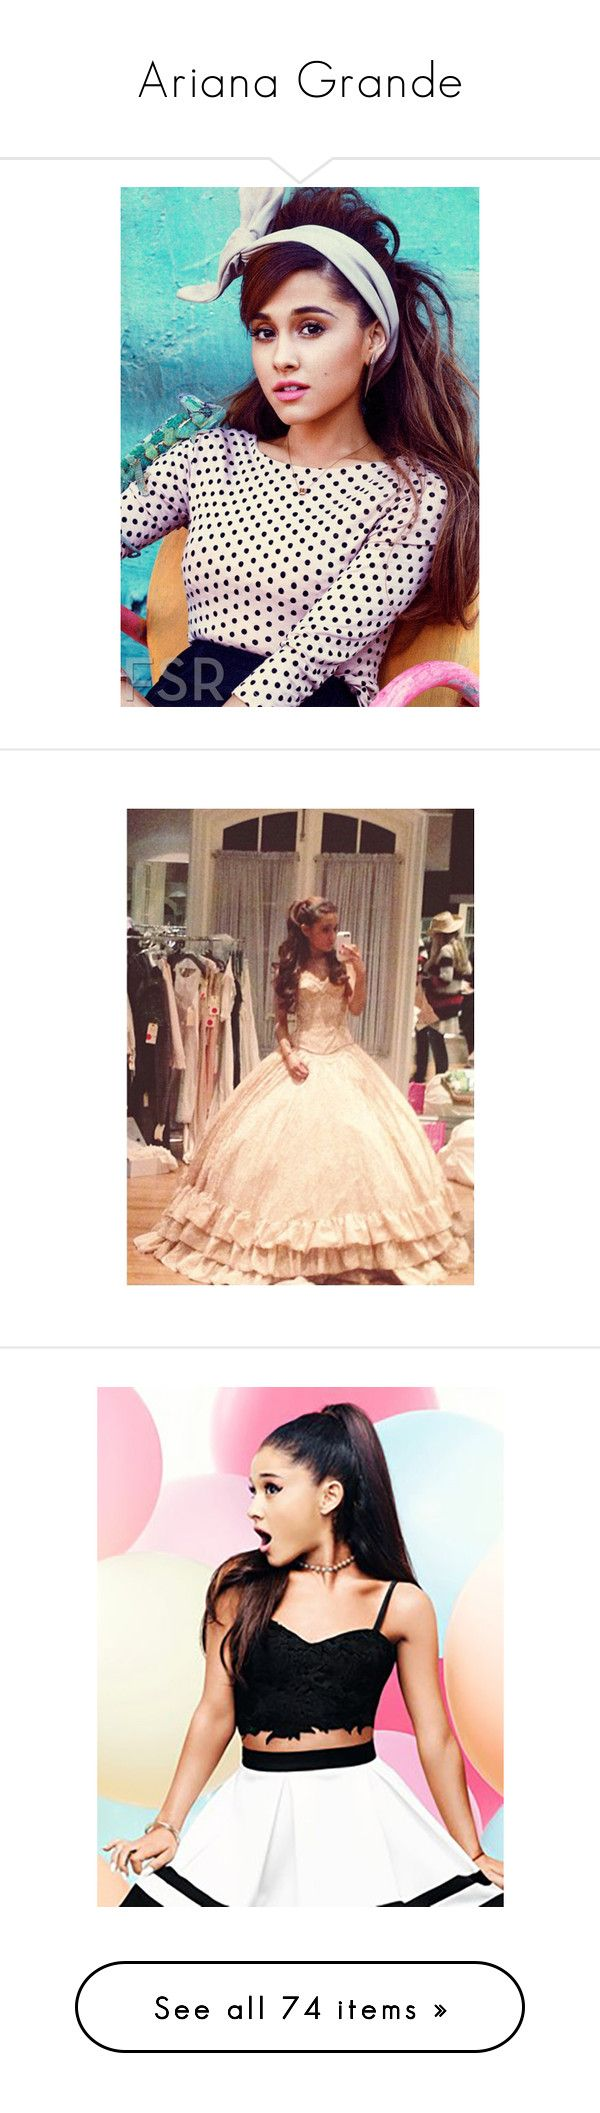 """""""Ariana Grande"""" by artemisa-538 ❤ liked on Polyvore featuring ariana grande, ariana, dresses, people, looks, tops, lace bralet tops, lace tops, lace bralette top and lipsy"""